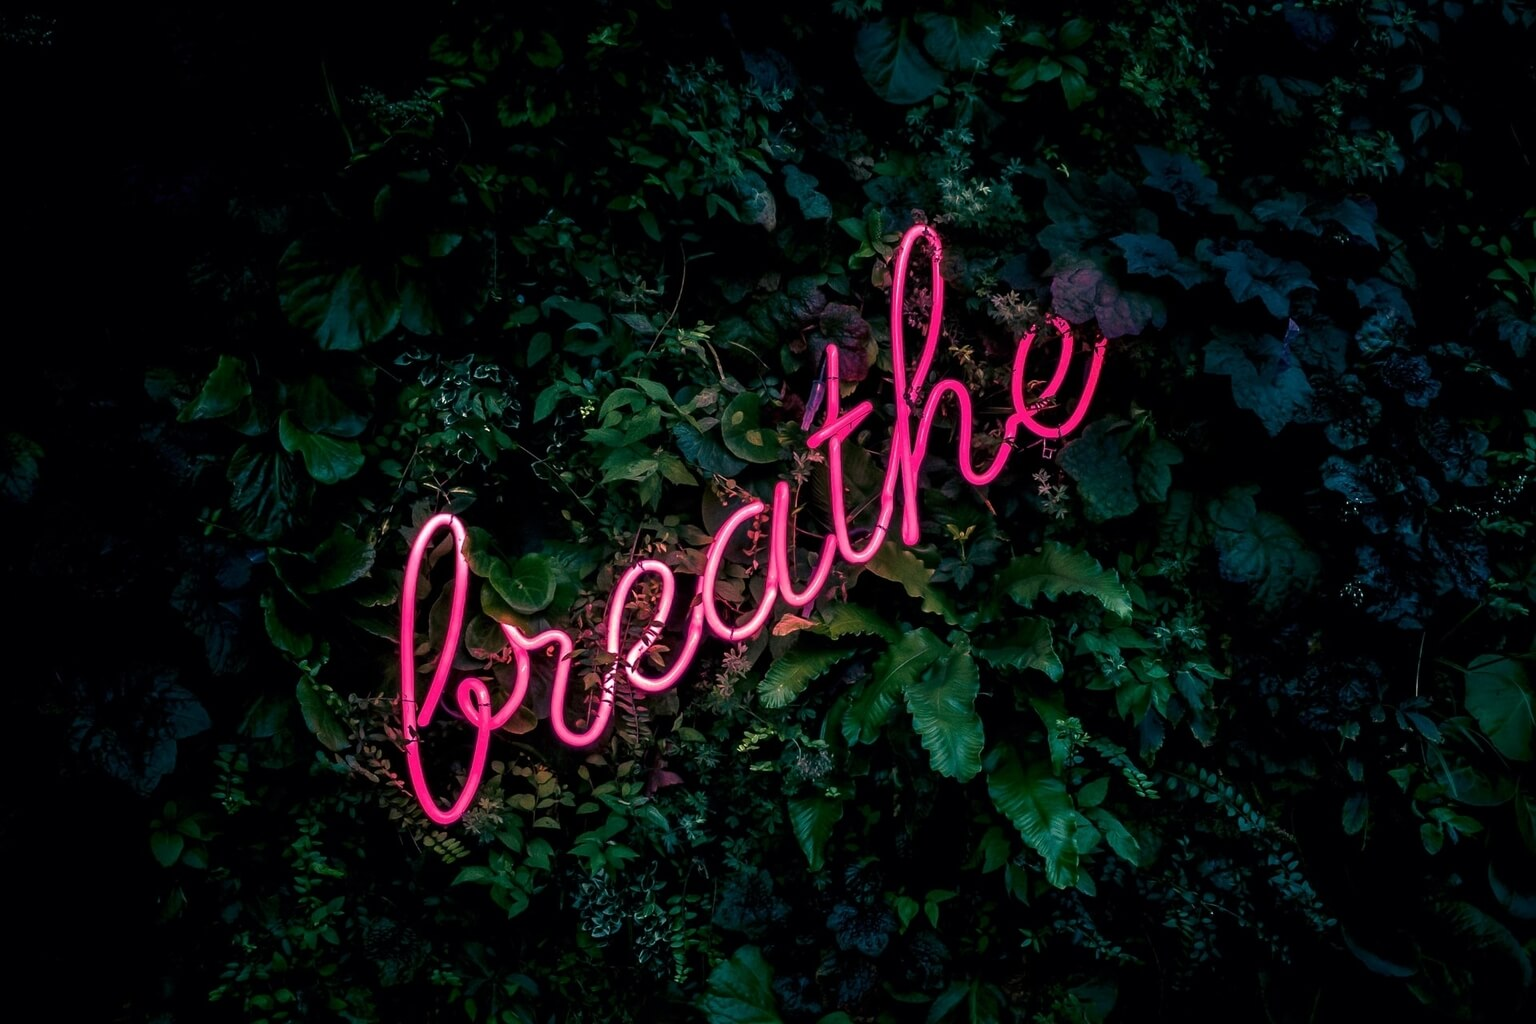 A picture of the top of a green bush at night. On top of the bush is a pink neon sign that spells Breathe in cursive letters.